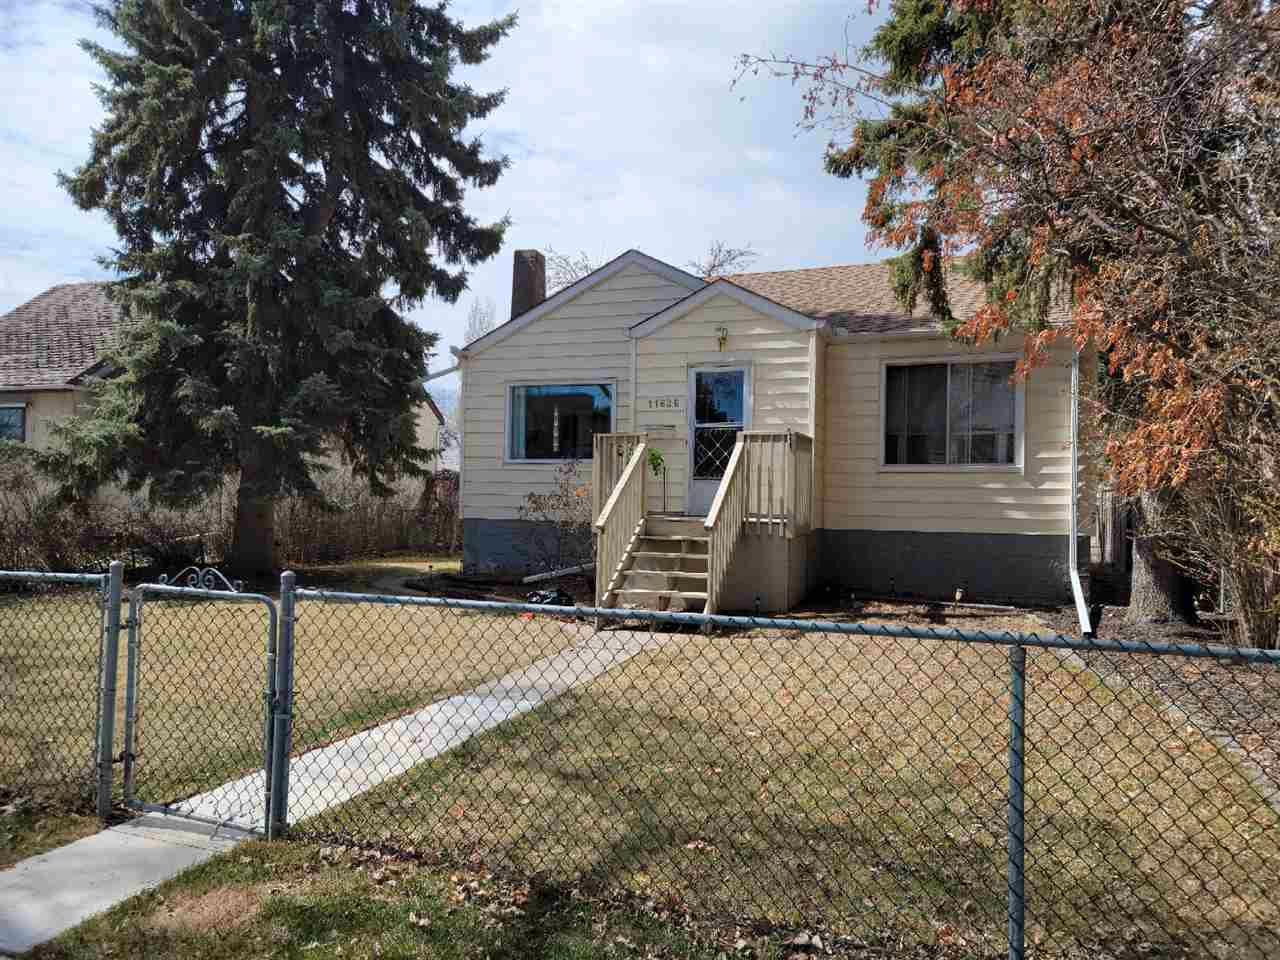 Main Photo: 11626 126 Street in Edmonton: Zone 07 House for sale : MLS®# E4241924